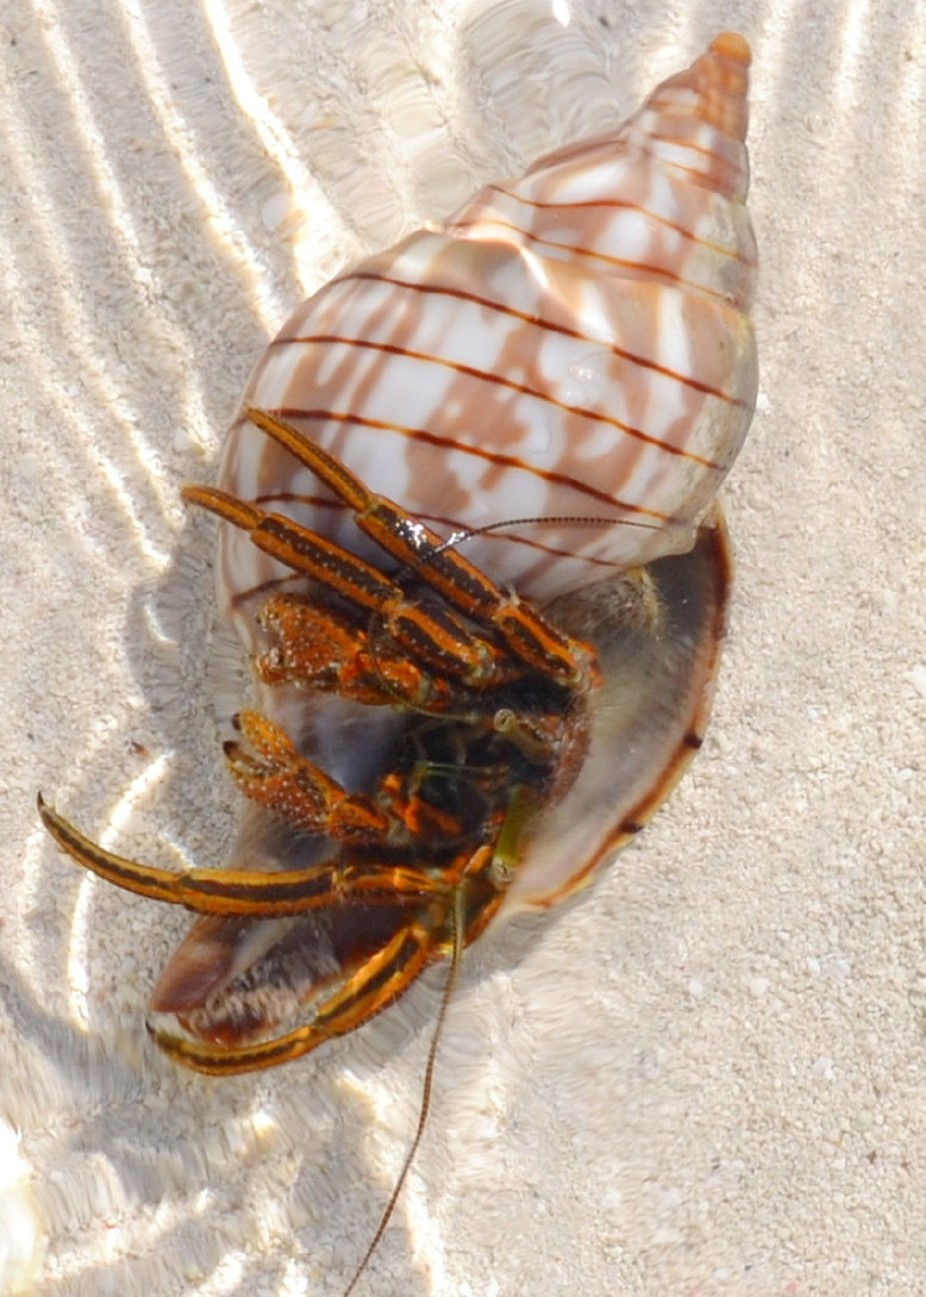 Hermit was found o.n a sandbar at Long Key State Park, Florida. Thought he was just a Shell